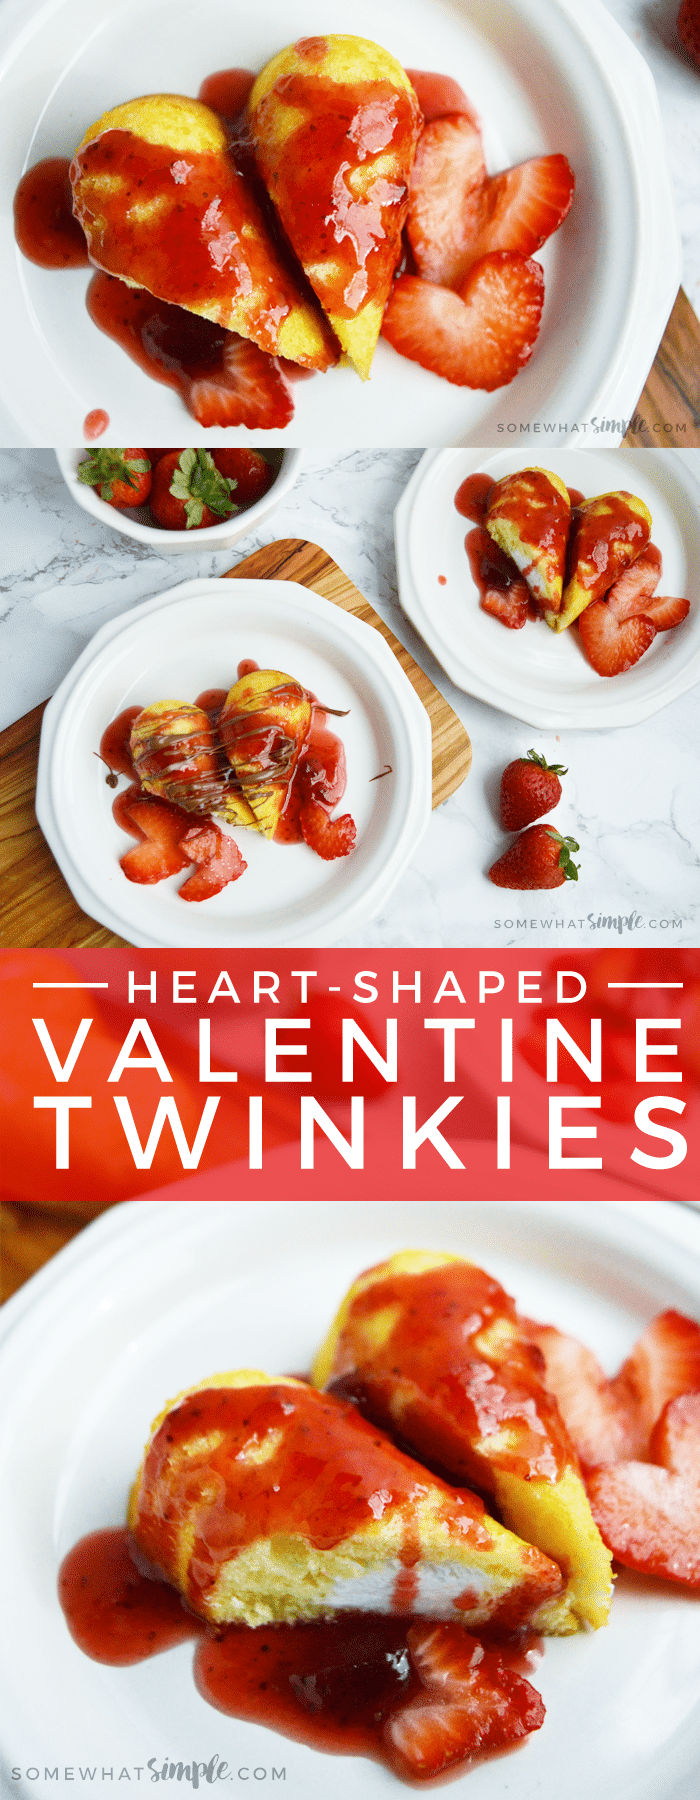 Kids love these heart-shaped Valentine Twinkies, and they are seriously one of the easiest Valentines desserts ever!